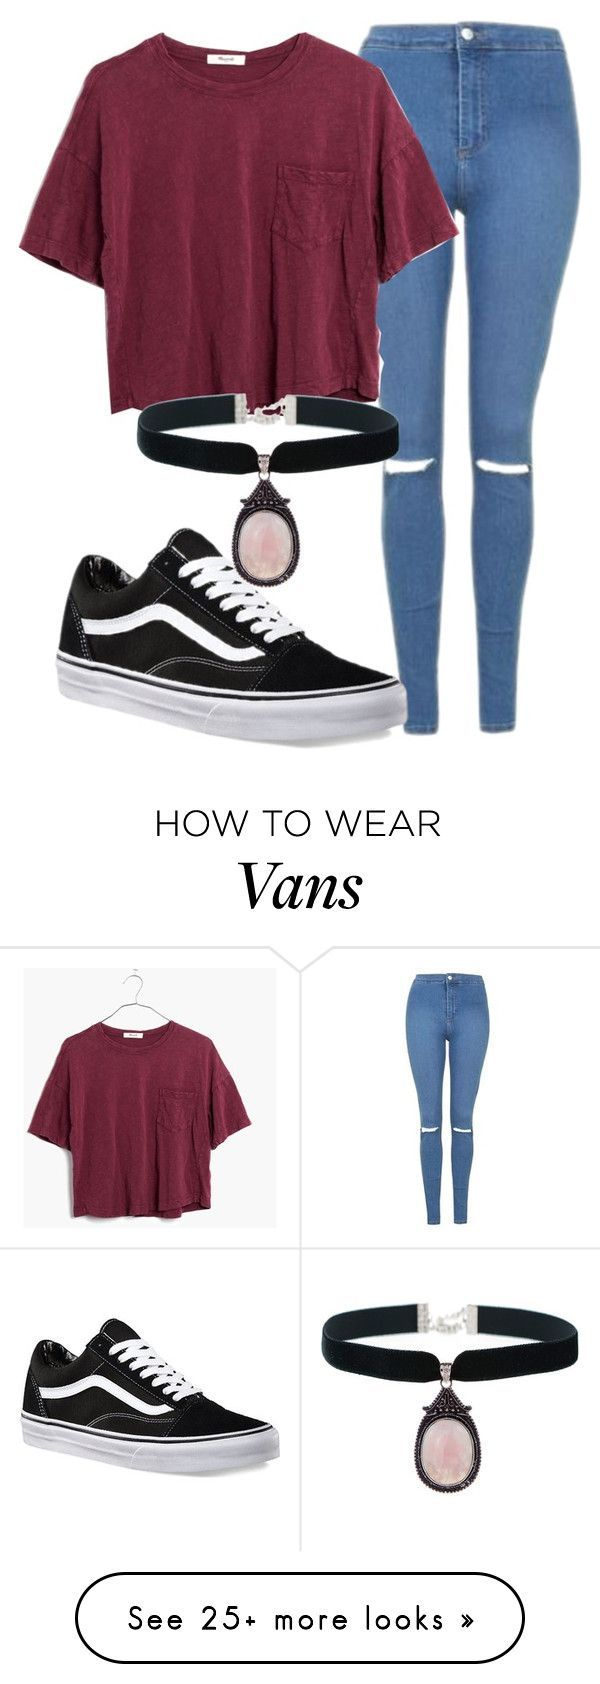 Best 25  Teenage outfits ideas on Pinterest | Teenage girl outfits ...